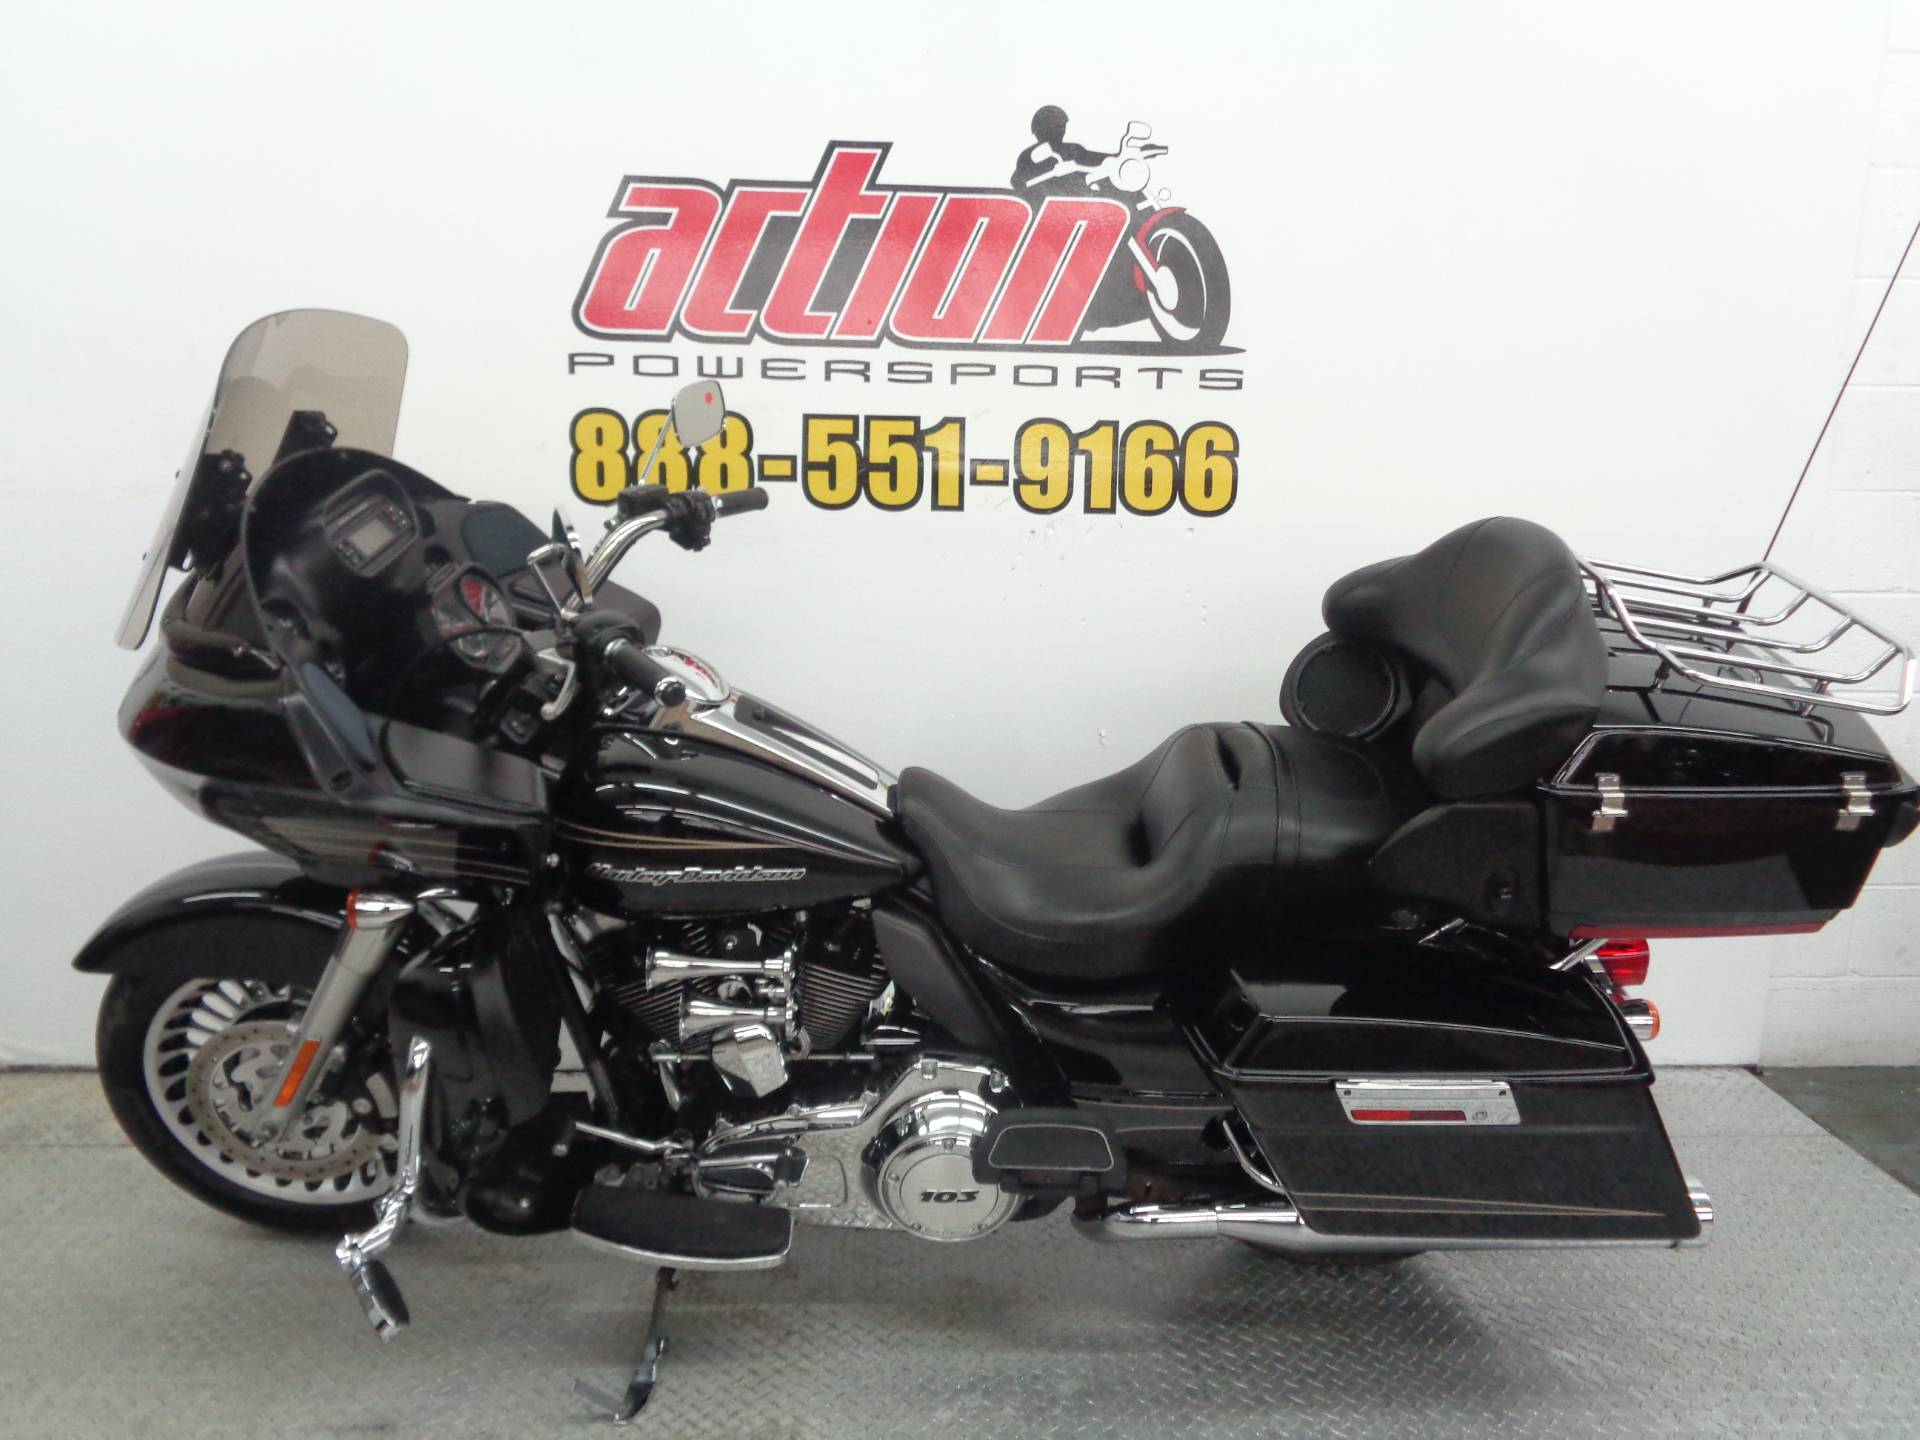 2013 Harley-Davidson Road Glide® Ultra in Tulsa, Oklahoma - Photo 2